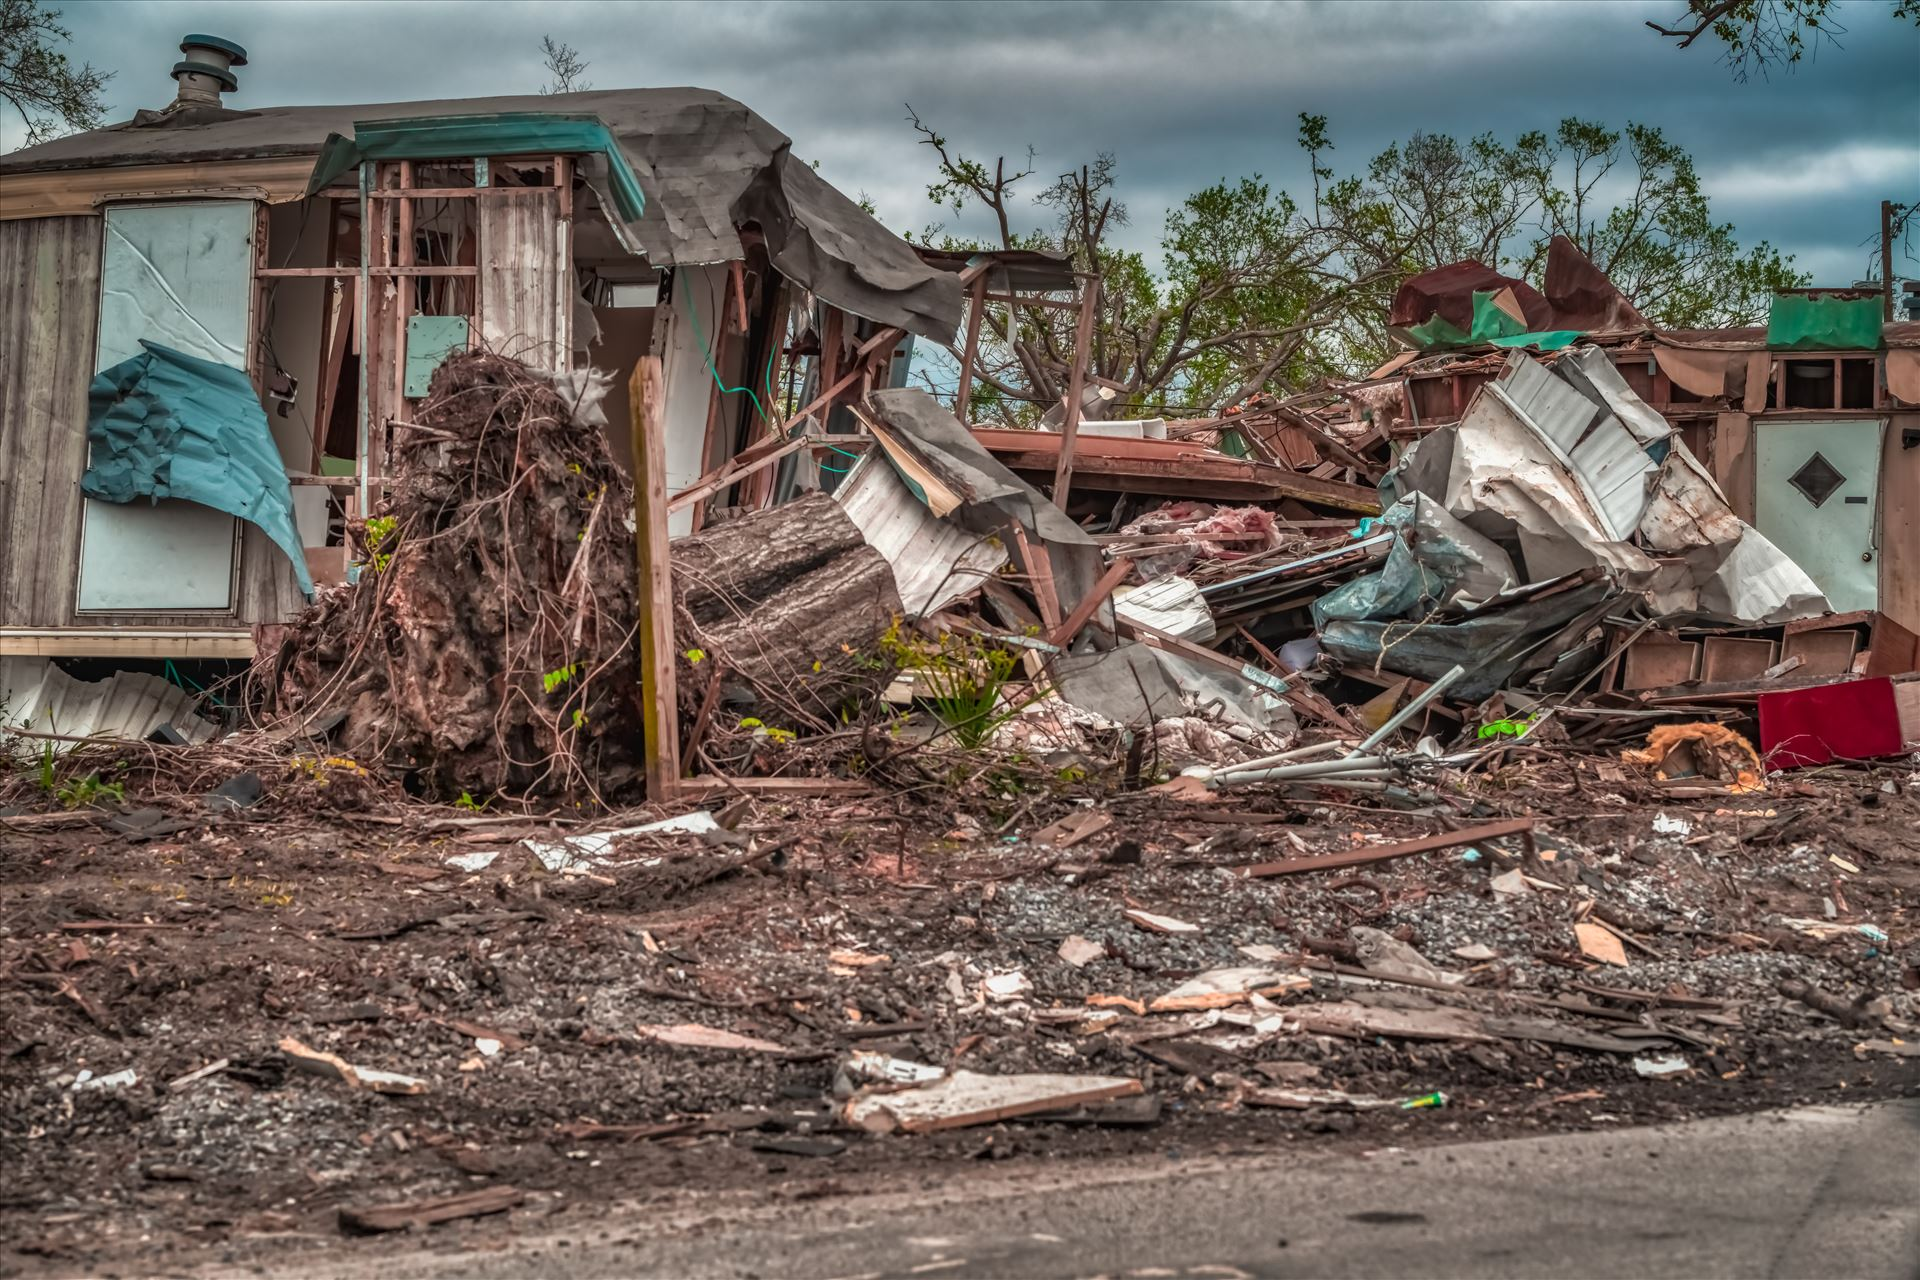 Hurricane Michael - Panama City, Florida, USA 01/05/2019. Mobile home destroyed by Terry Kelly Photography